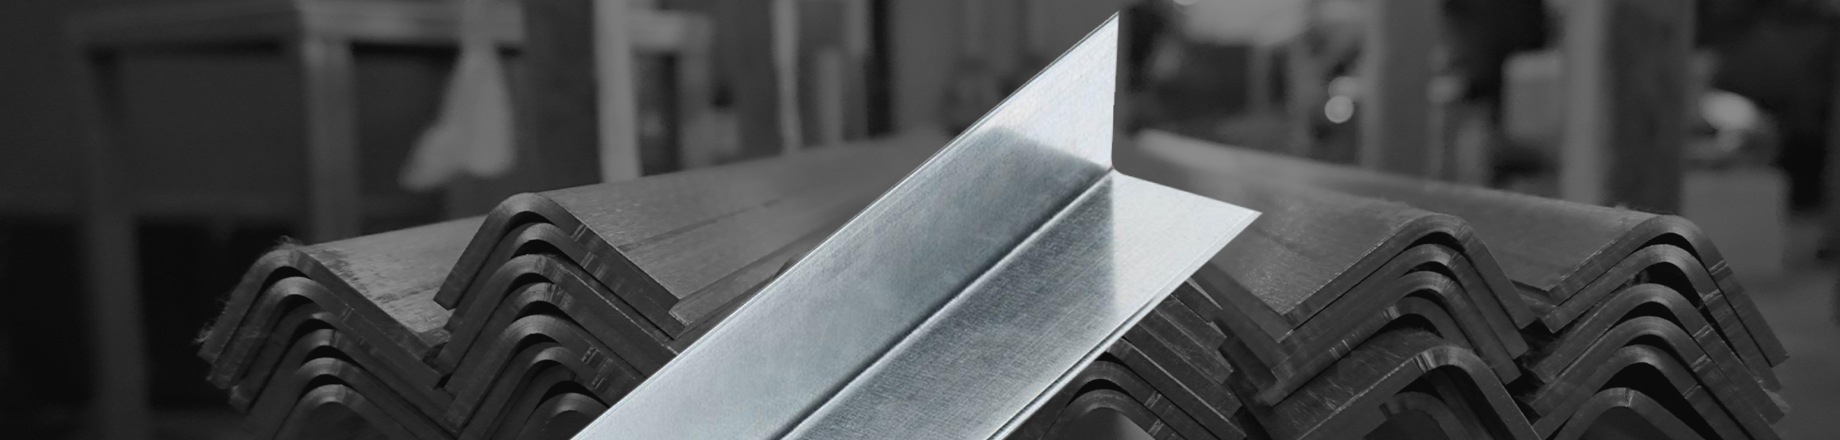 clares-metal-angleproducts